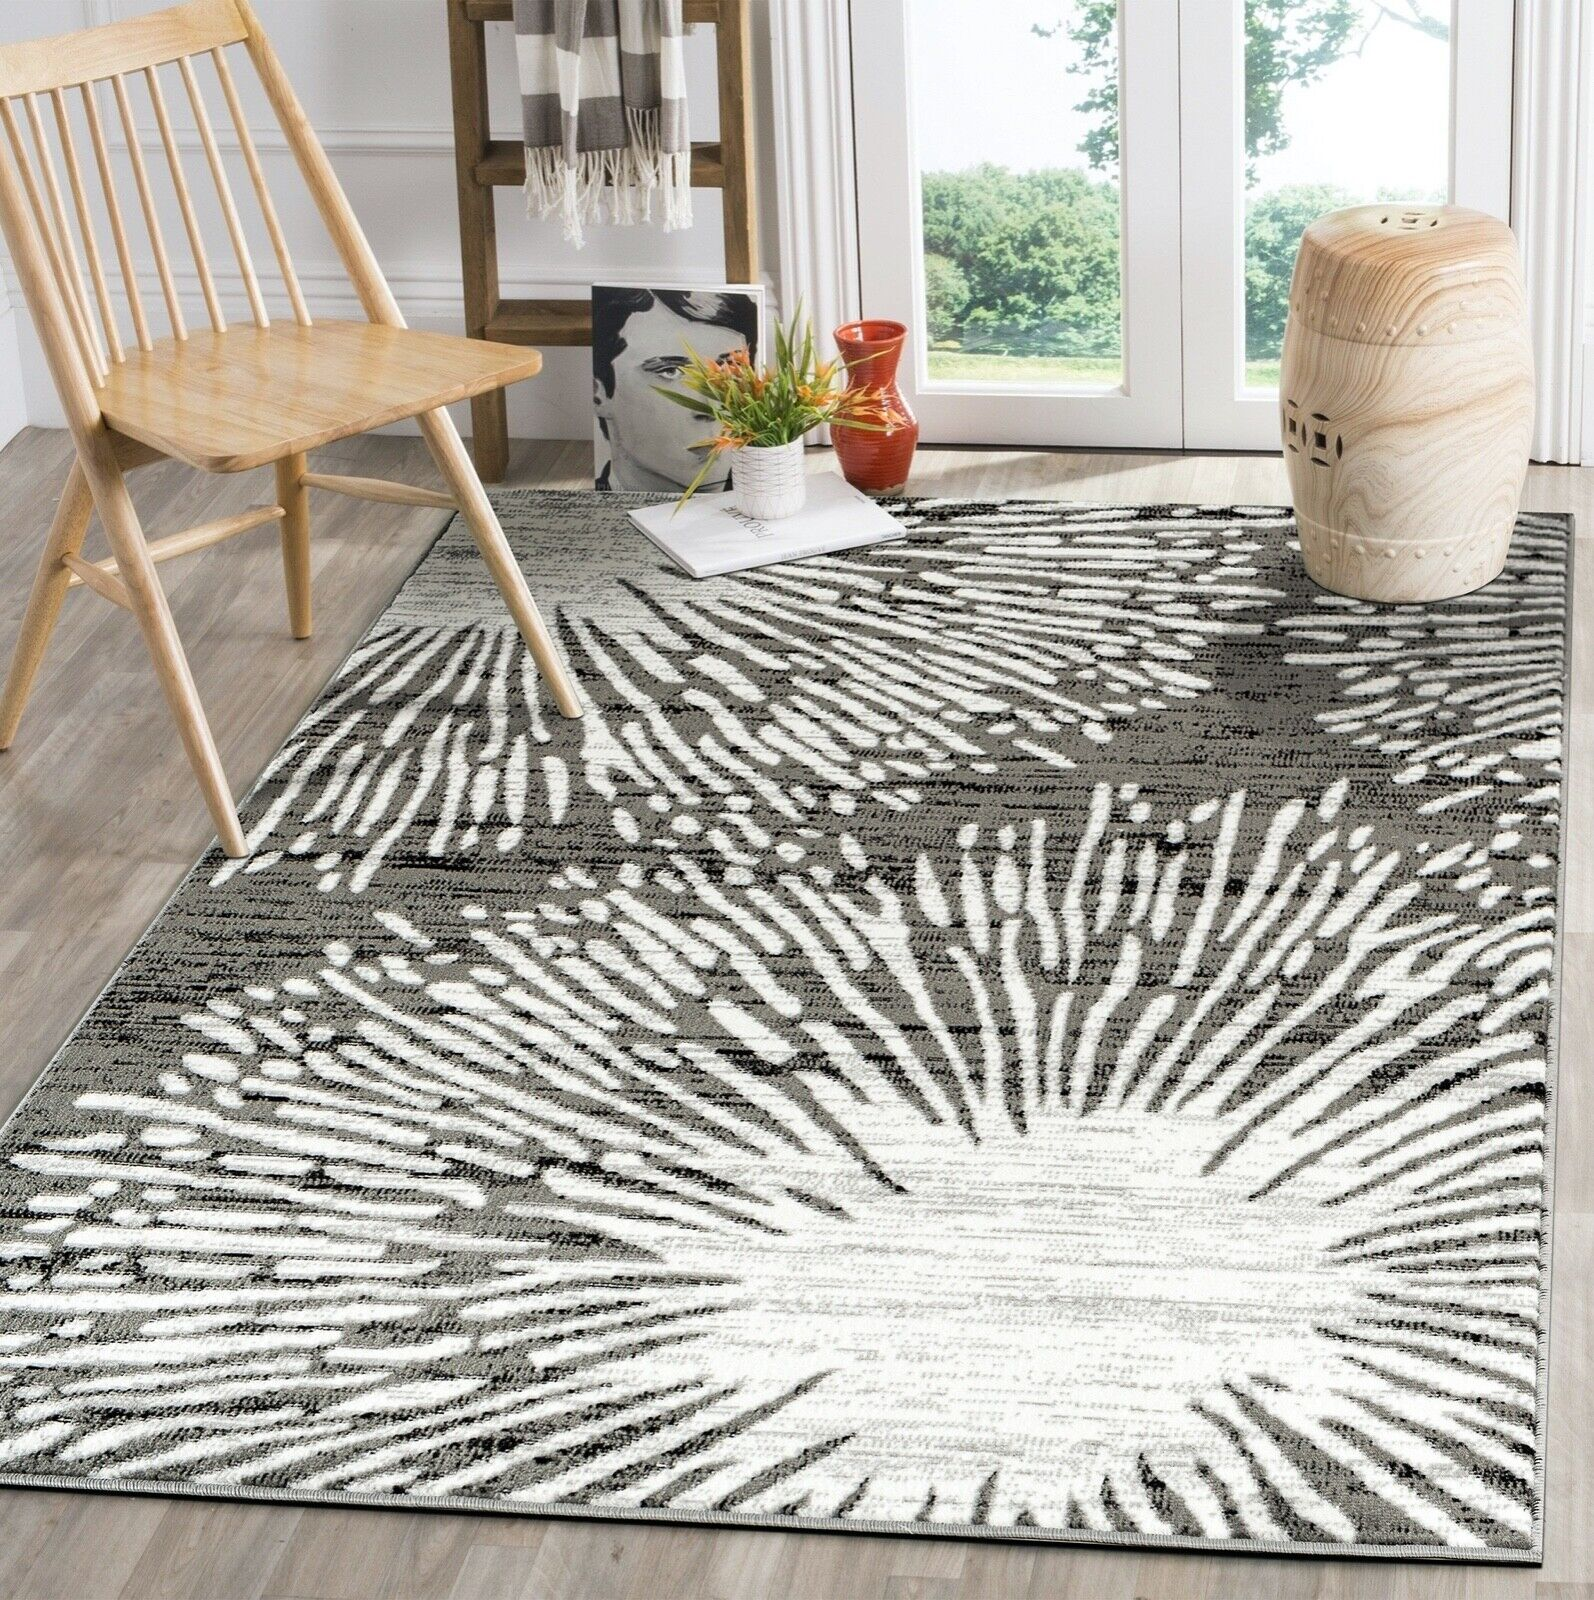 Adonis Geometric Turquoise Black and Gray Area Rug 4x6 5x8 7x10 8x11 ANS1097